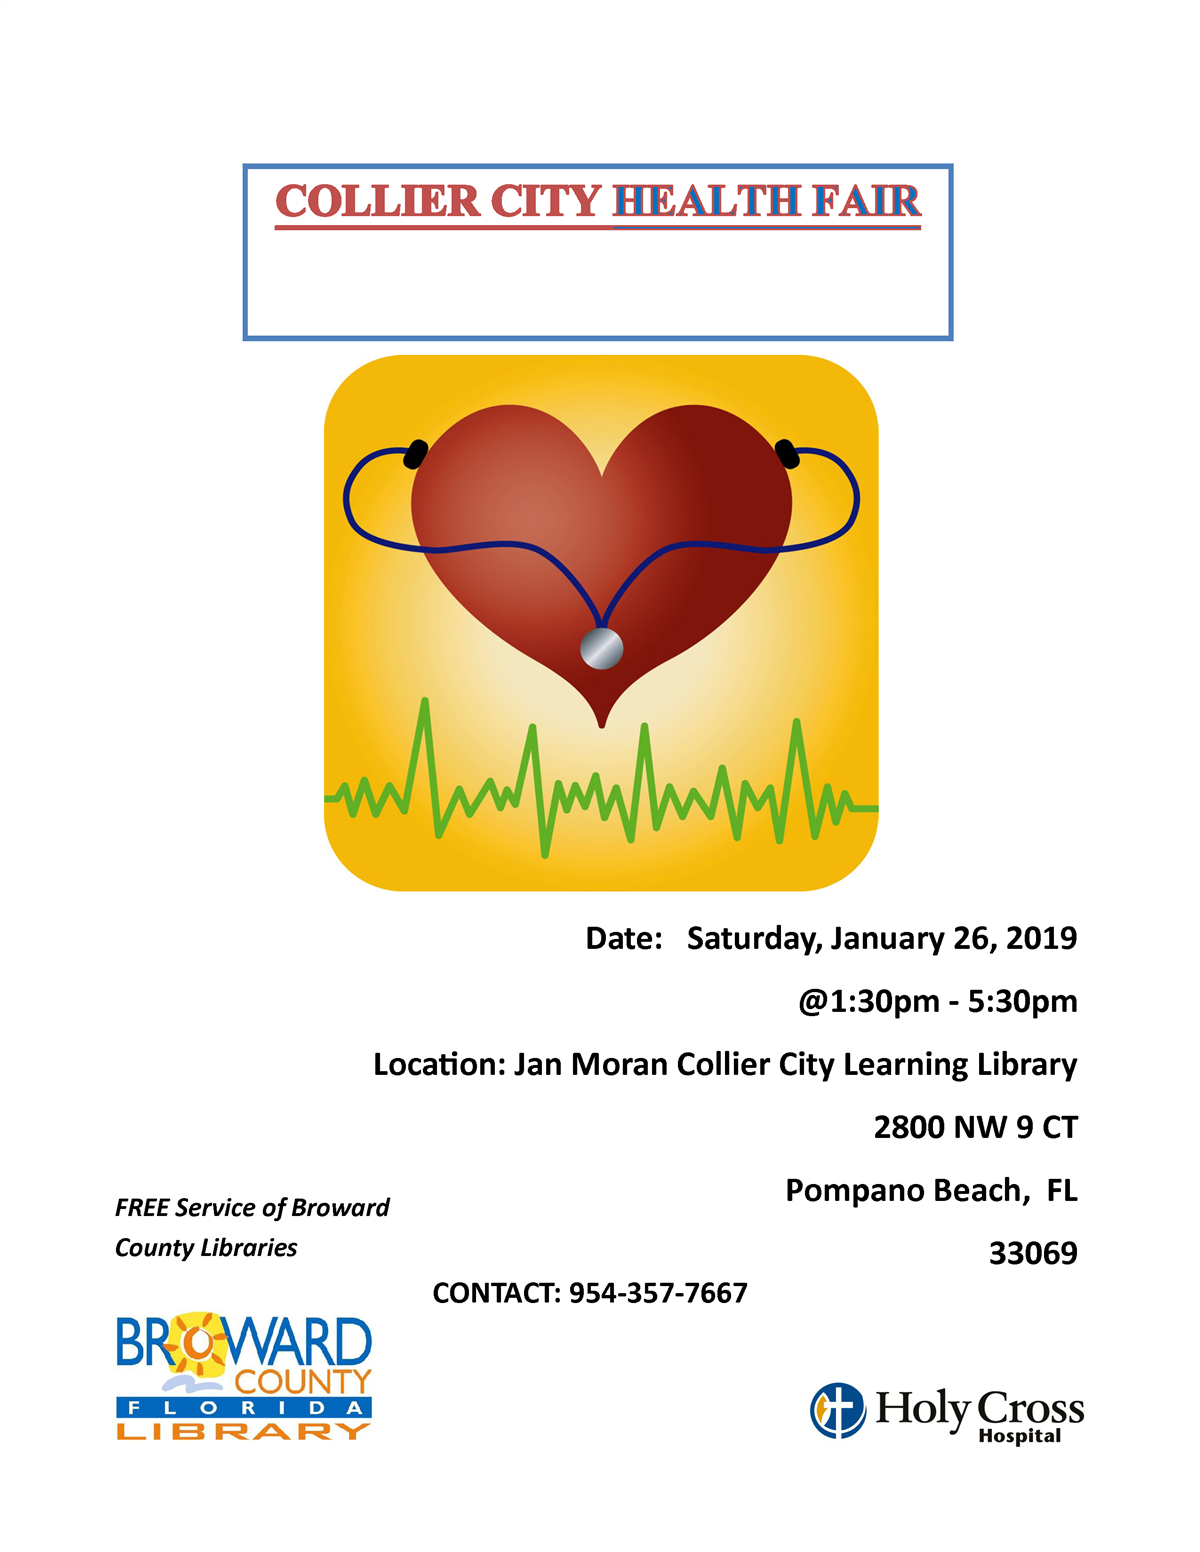 COLLIER CITY HEALTH FAIR